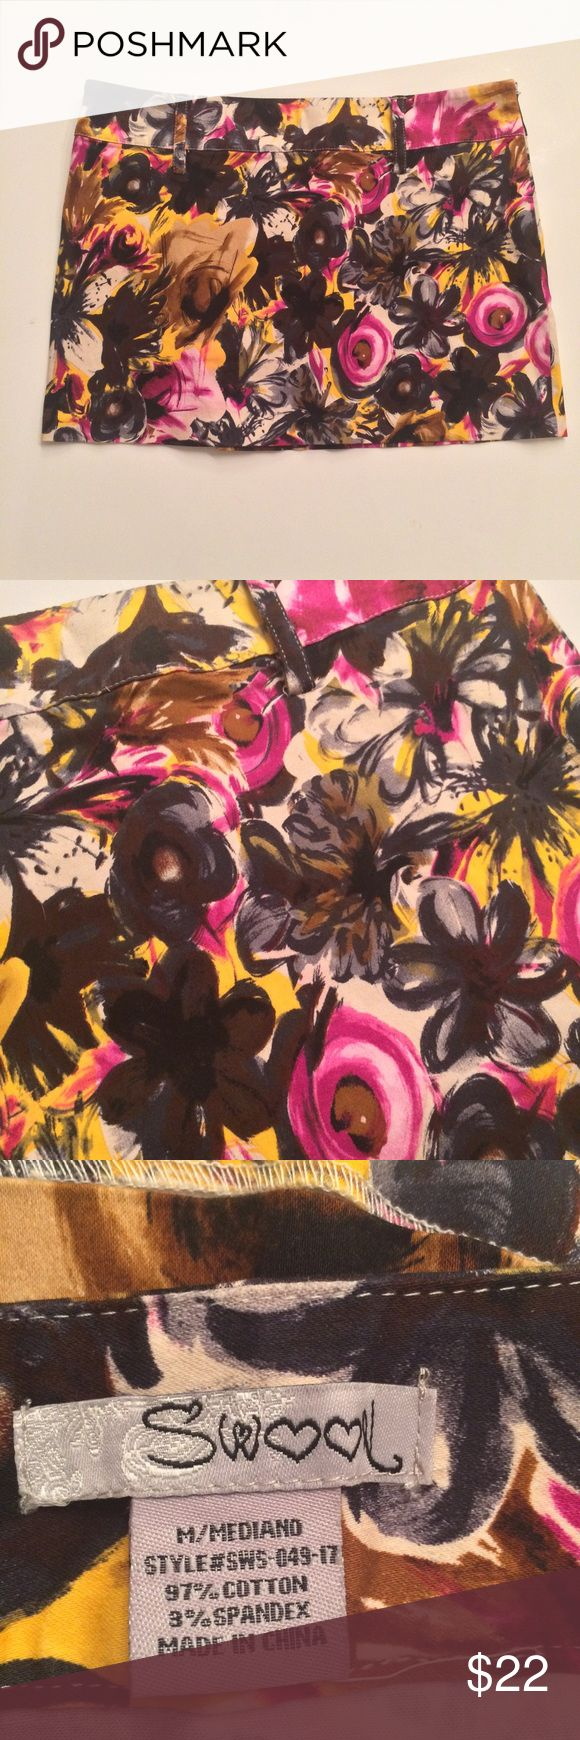 Swoon Floral Micro Skirt -Bright & Beautiful Swoon brand micro skirt in a beautiful pink, black, and goldenrod floral design. Has beltloops. Size Medium (probably in juniors, it runs small). In very gently used condition with no stains or rips. Measurements available upon request, I haven't had the chance to take them yet but could get them ASAP if interested :) Swoon Boutique Skirts Mini